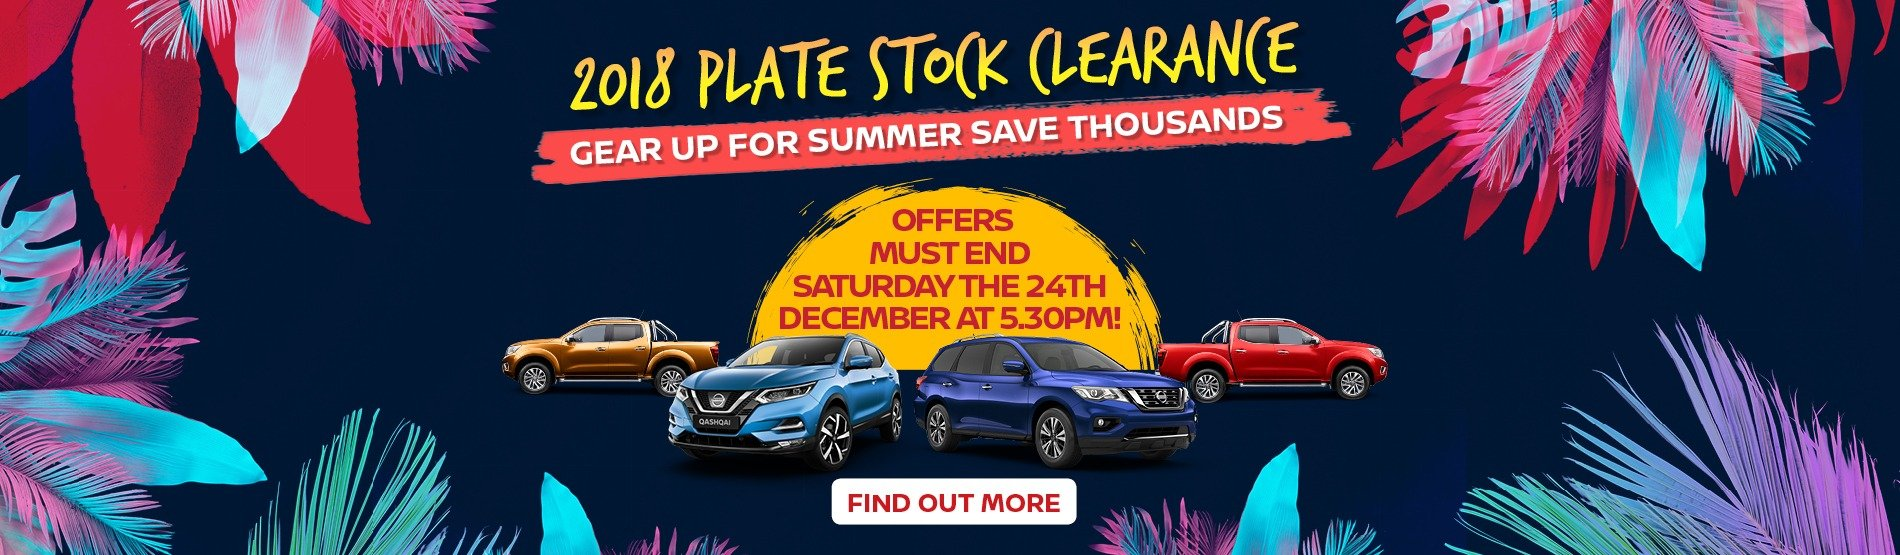 2018 Plate Stock Clearance